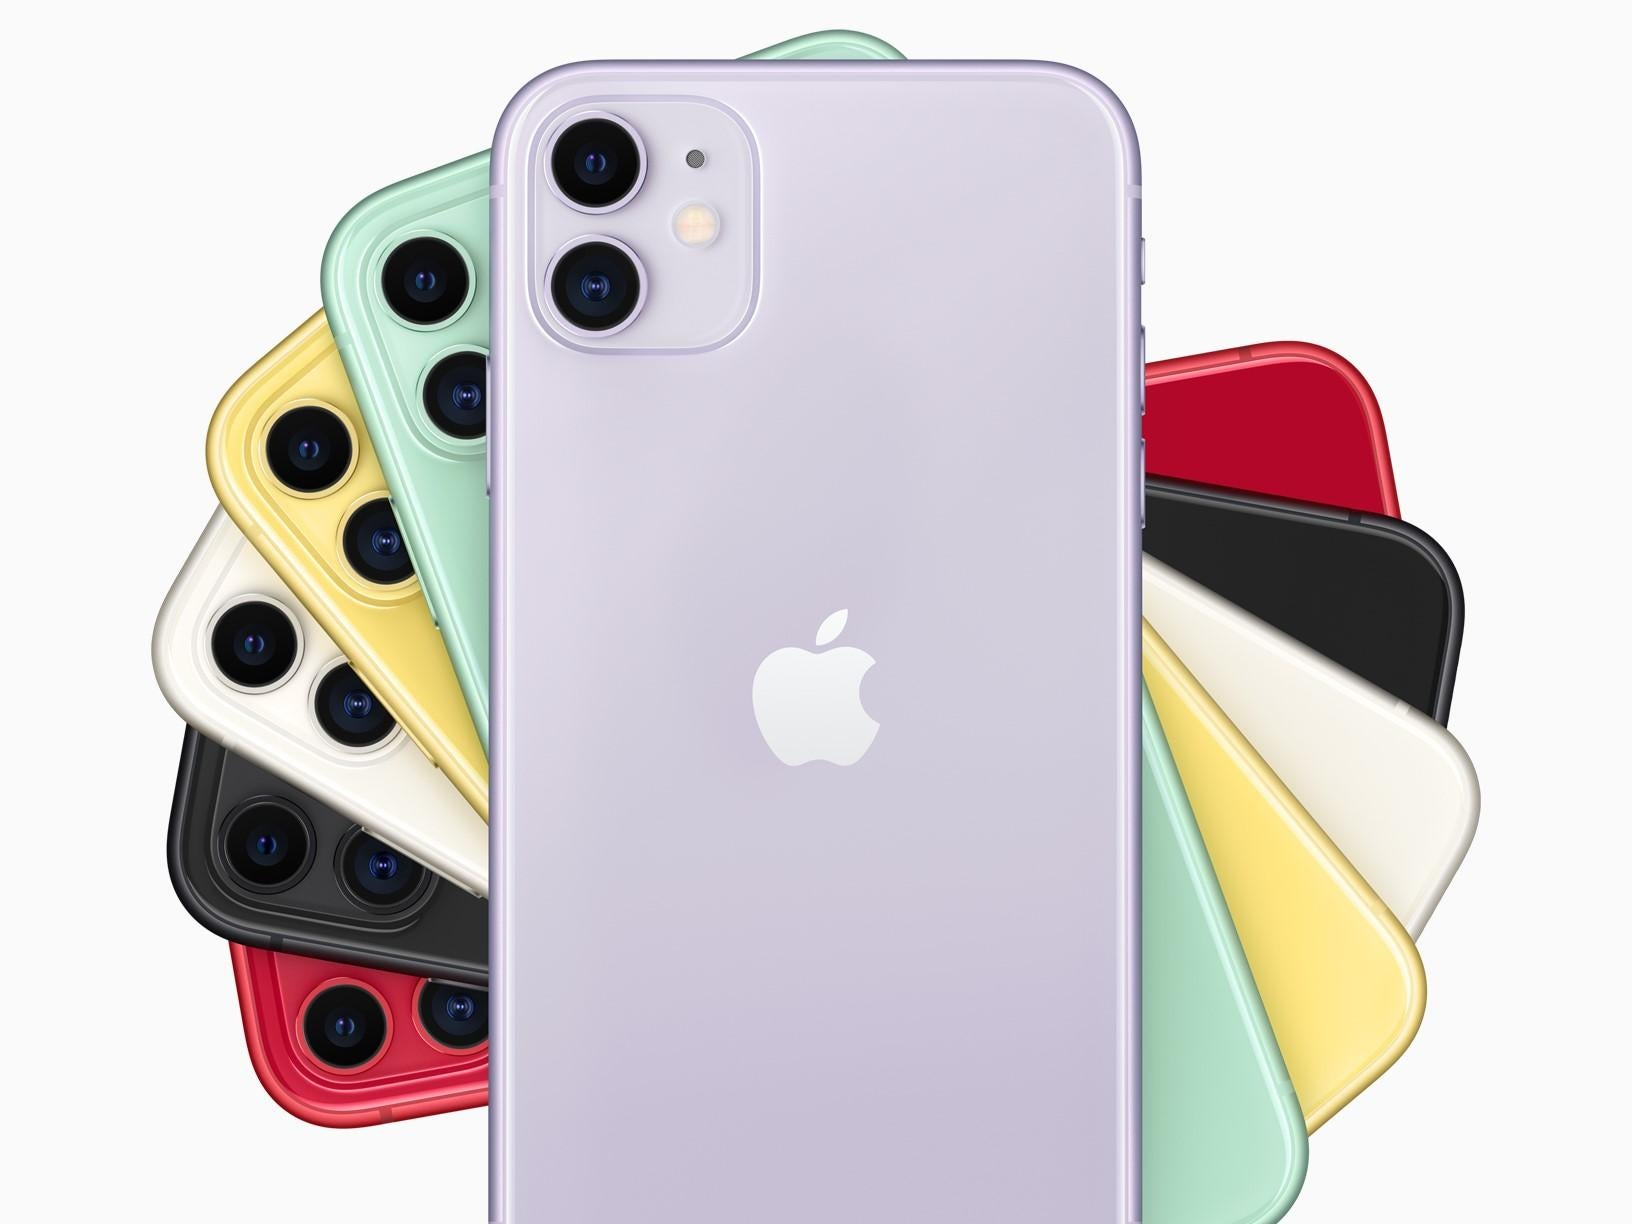 iPhone 11 review: An eye-catching upgrade with only the odd disappointment